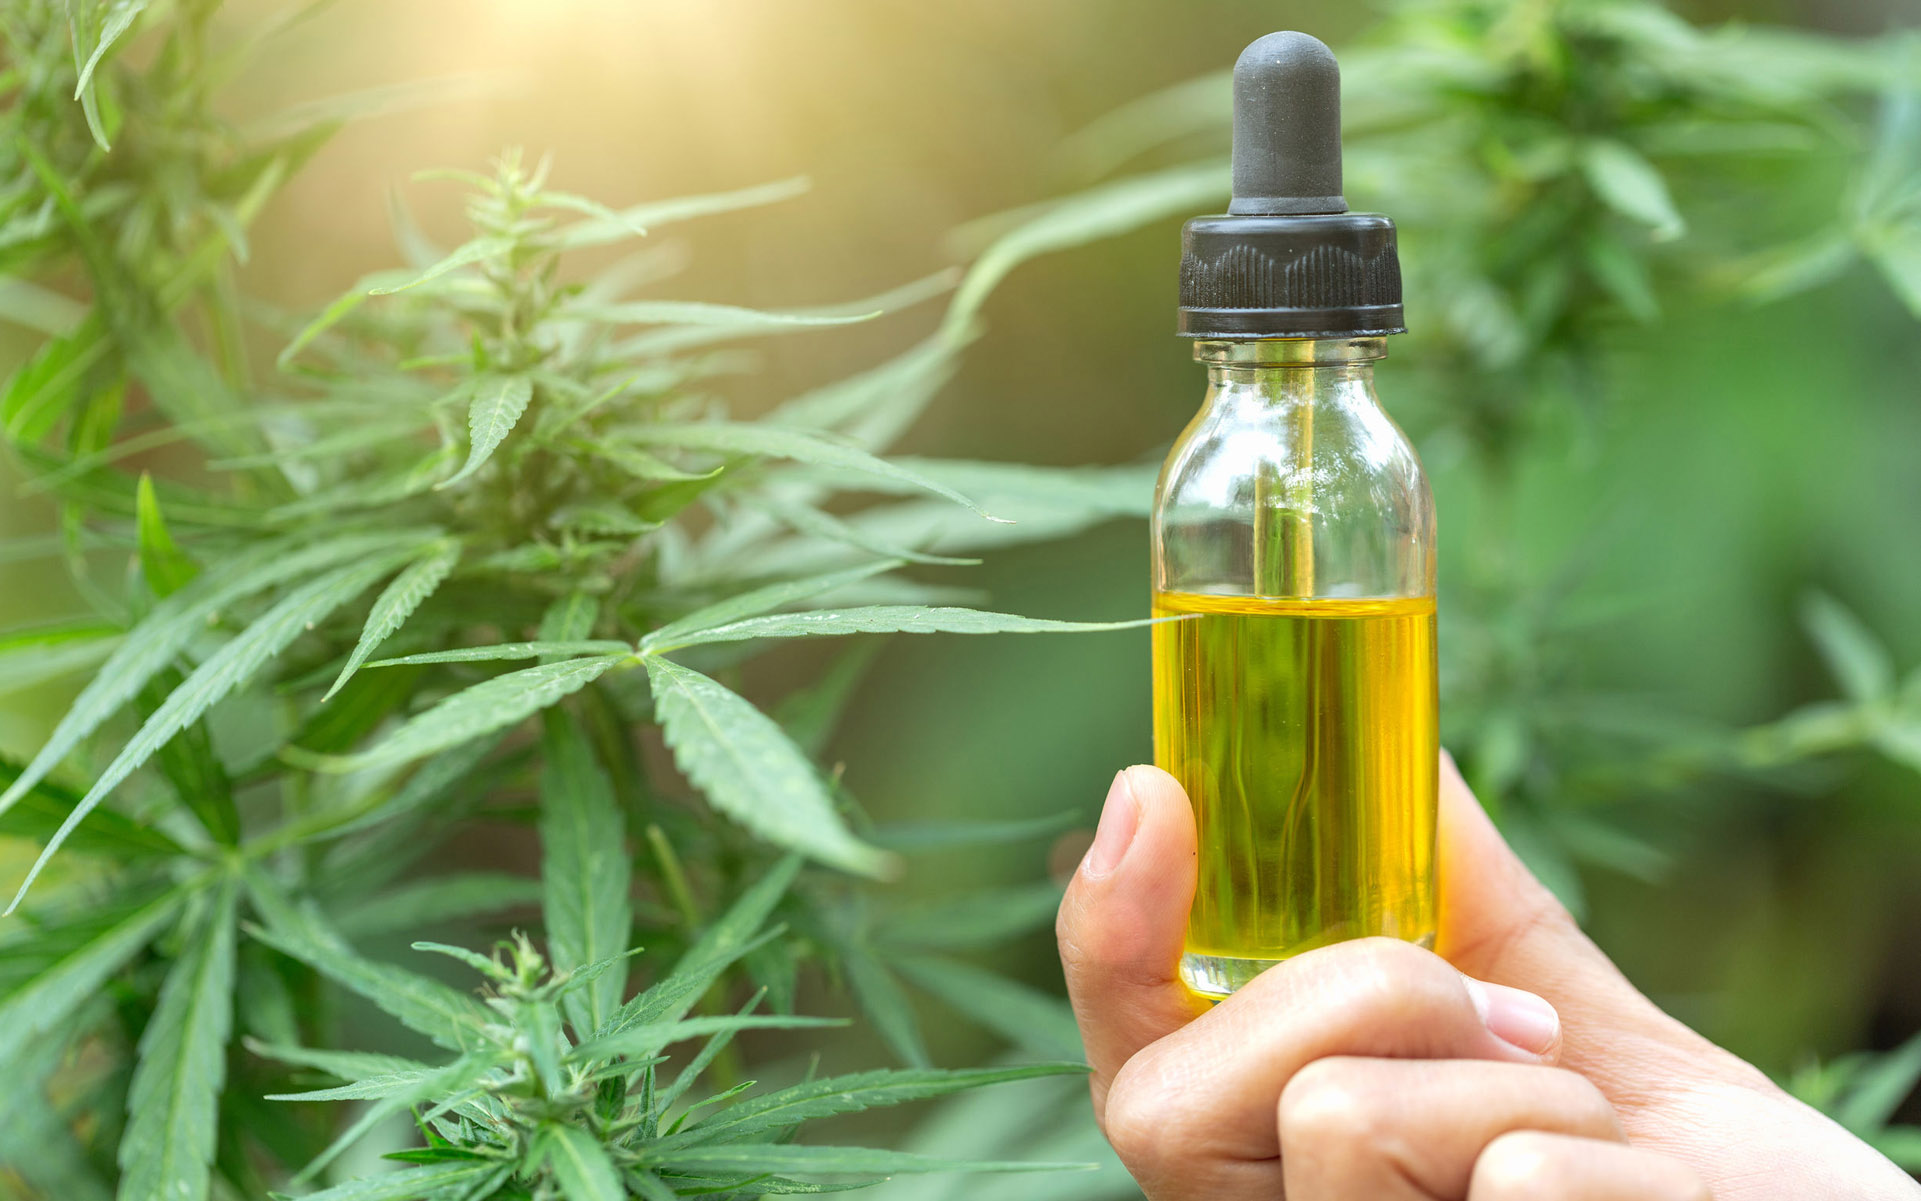 Hand holding a CBD tincture bottle in front of cannabis plants